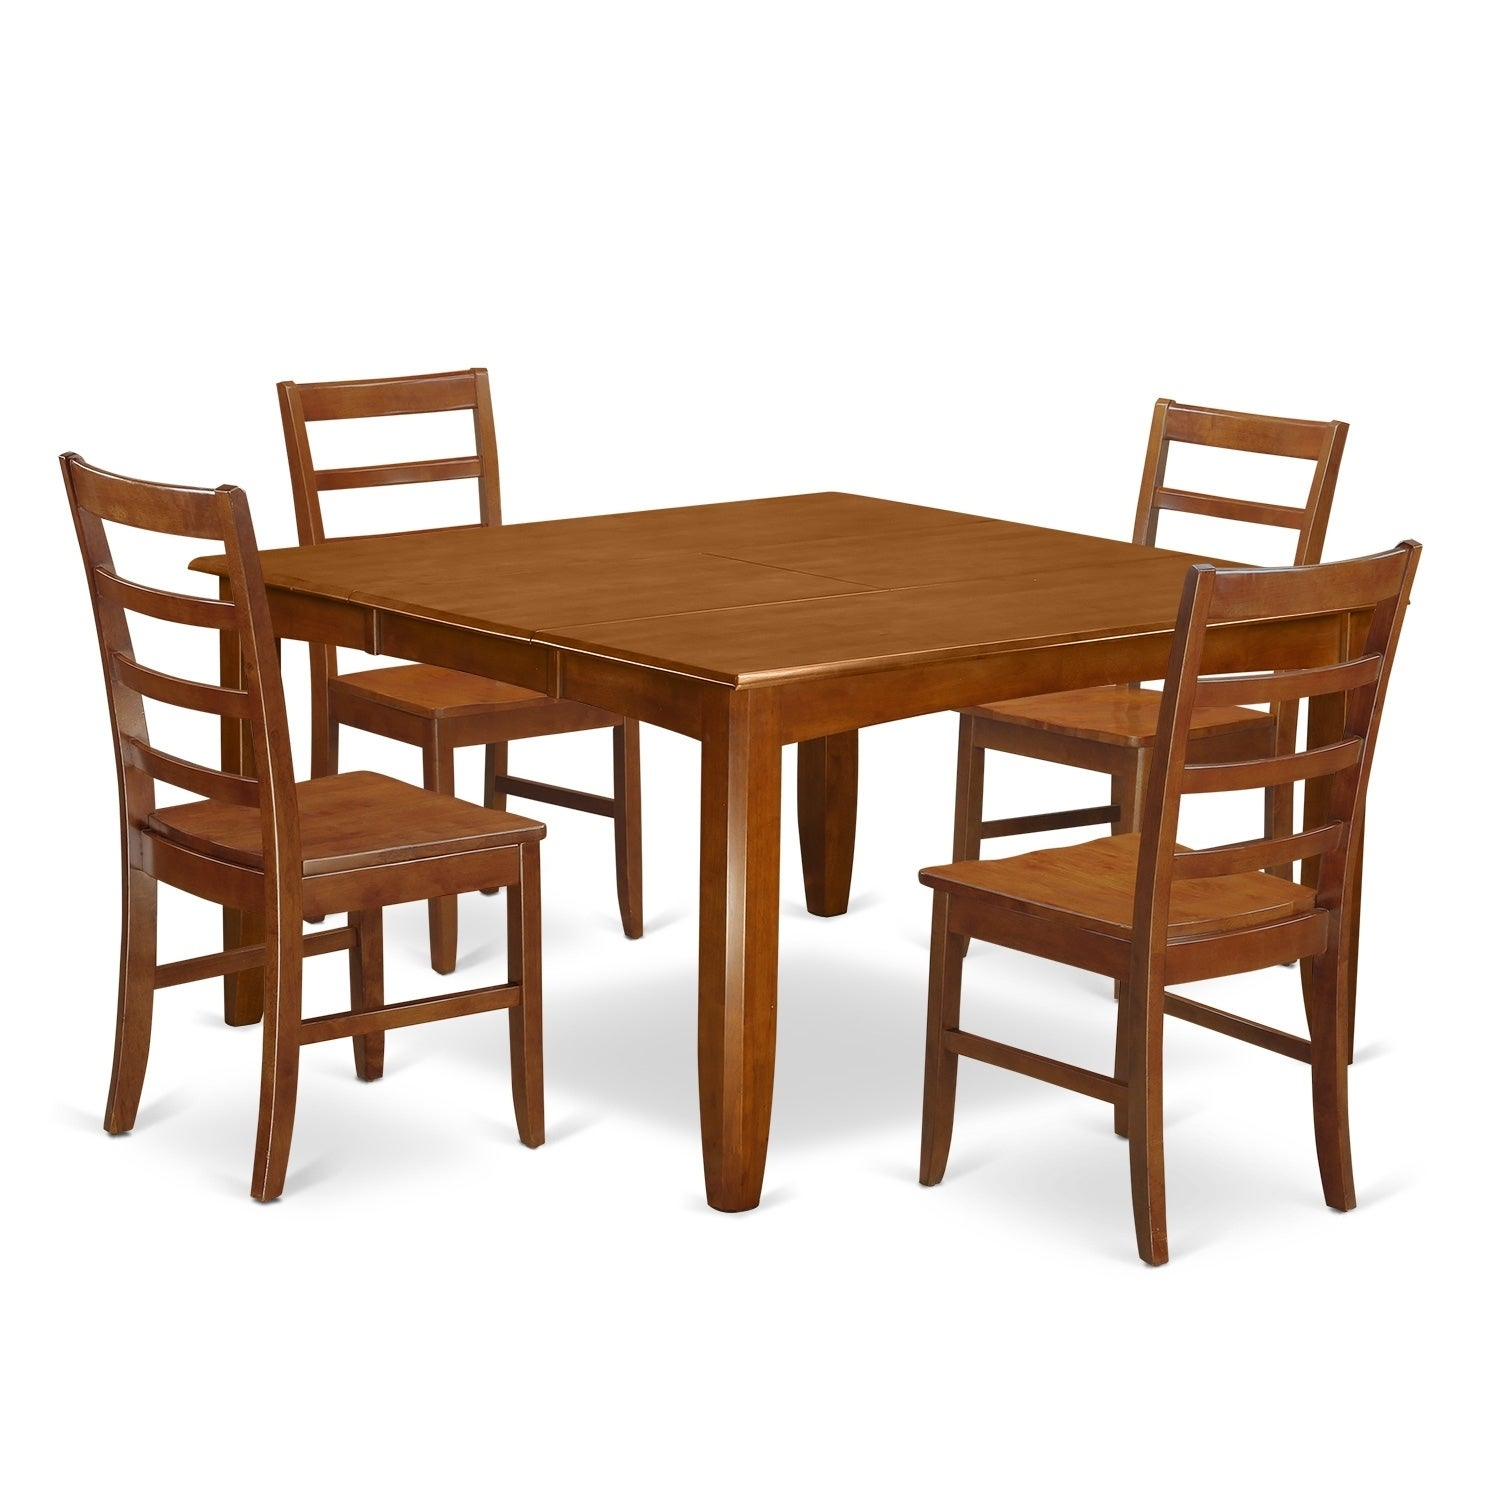 PARF5-SBR 5 Pc Dining Room Set-Square Table And 4 Dining